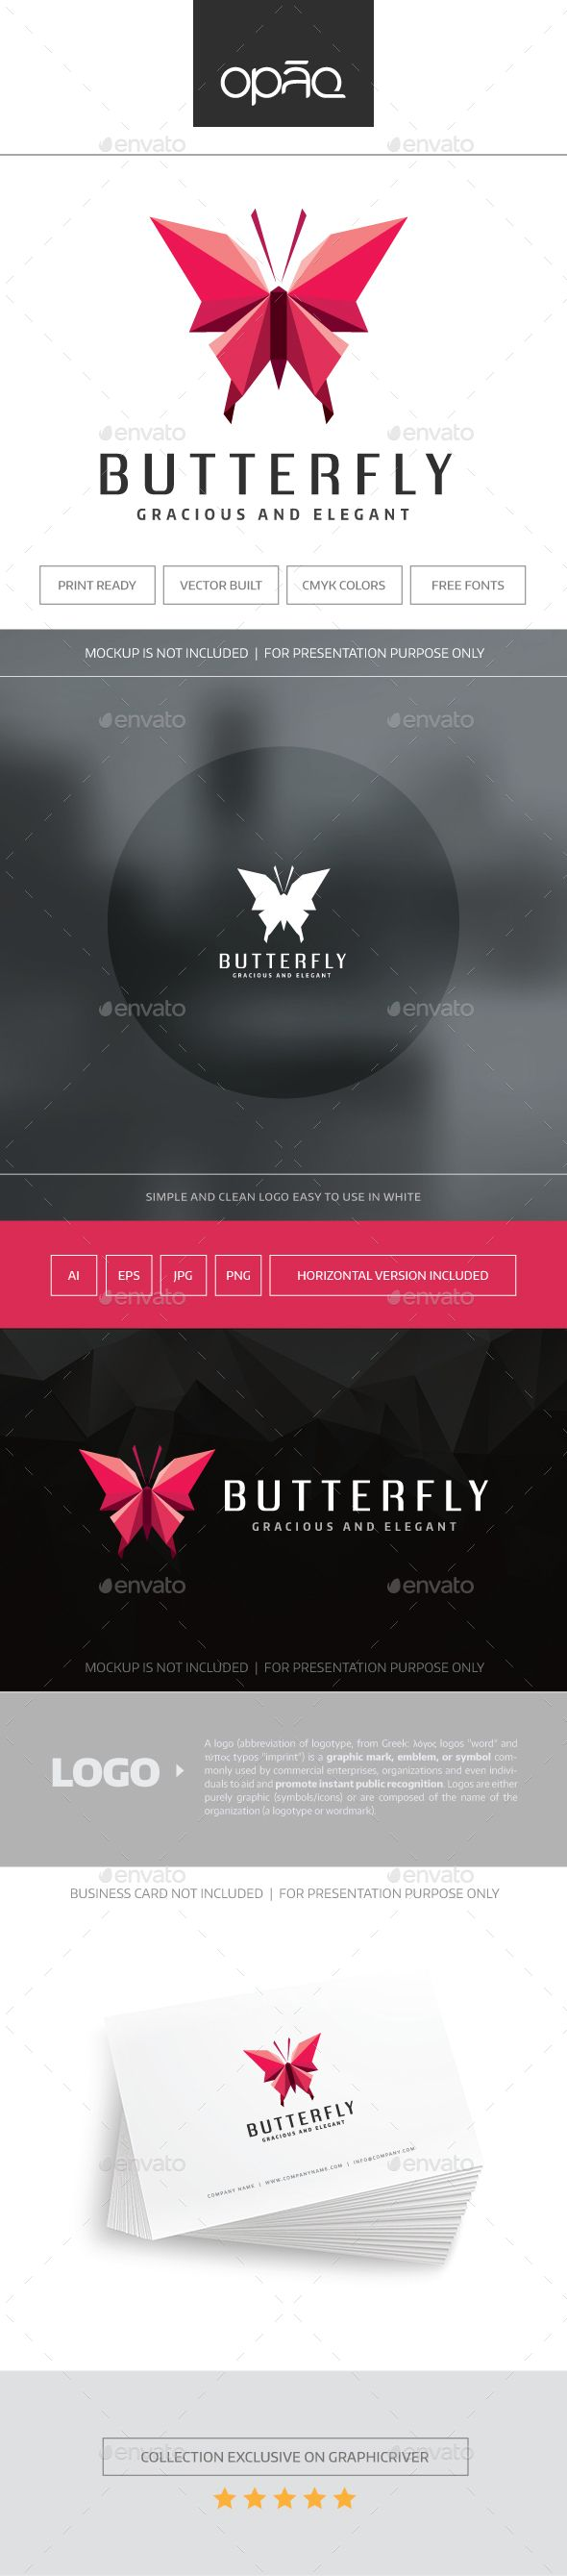 Butterfly Logo  EPS Template • Download ➝ https://graphicriver.net/item/butterfly-logo/17101121?ref=pxcr